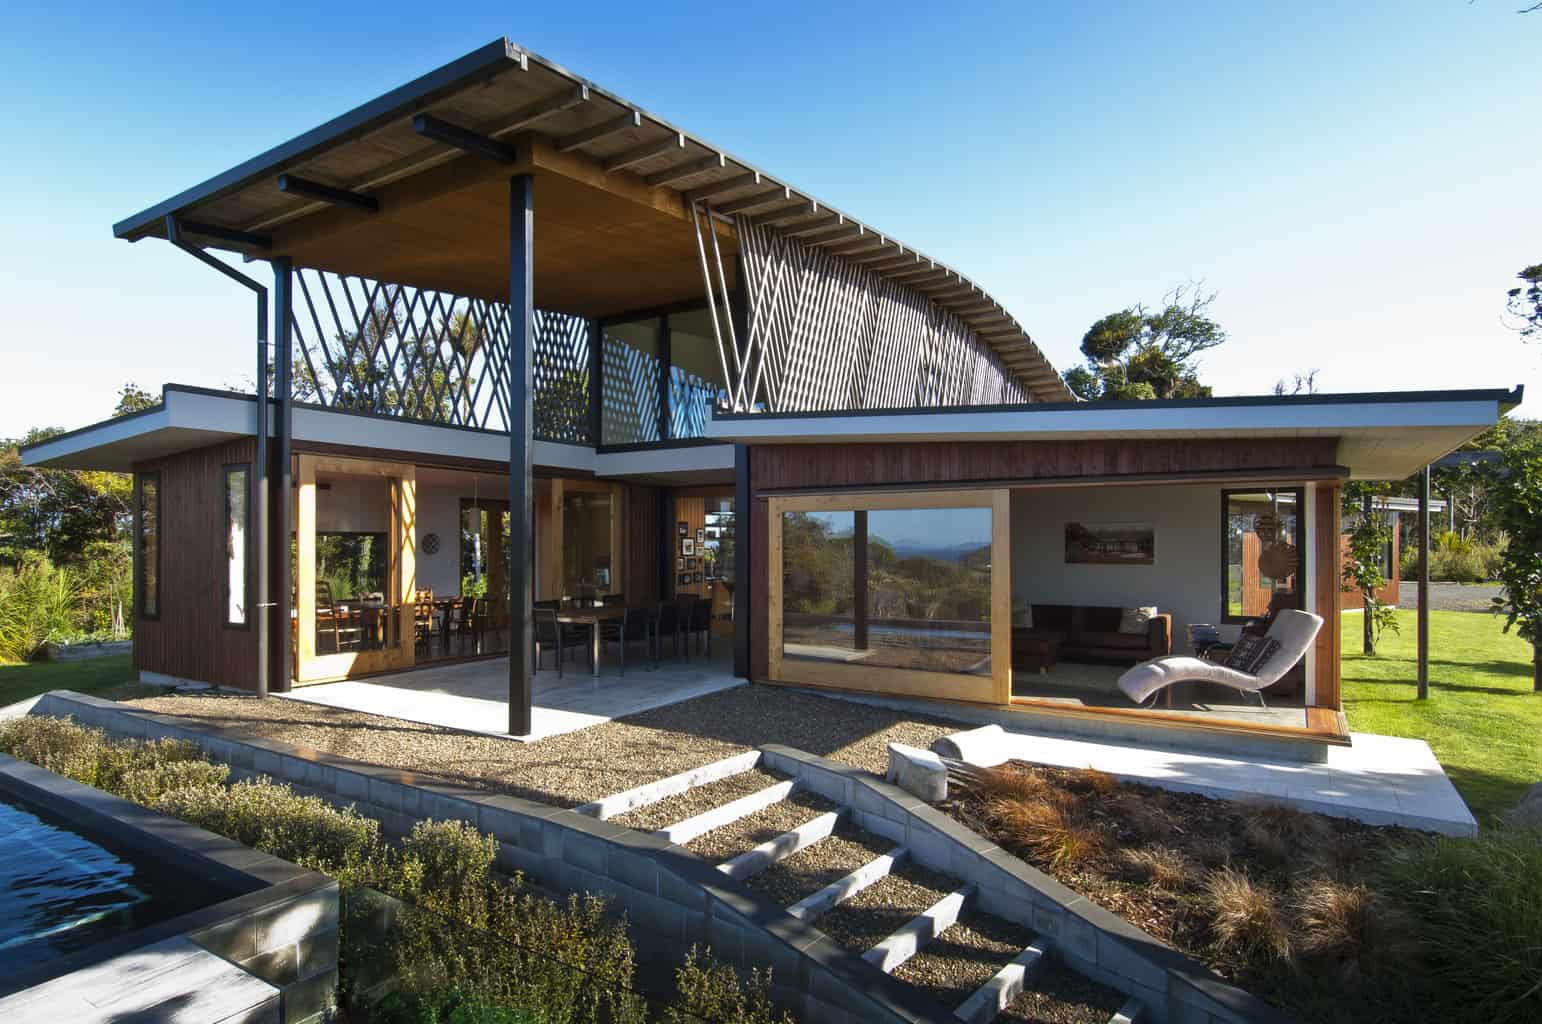 Tree canopy architecture by Tennent + Brown